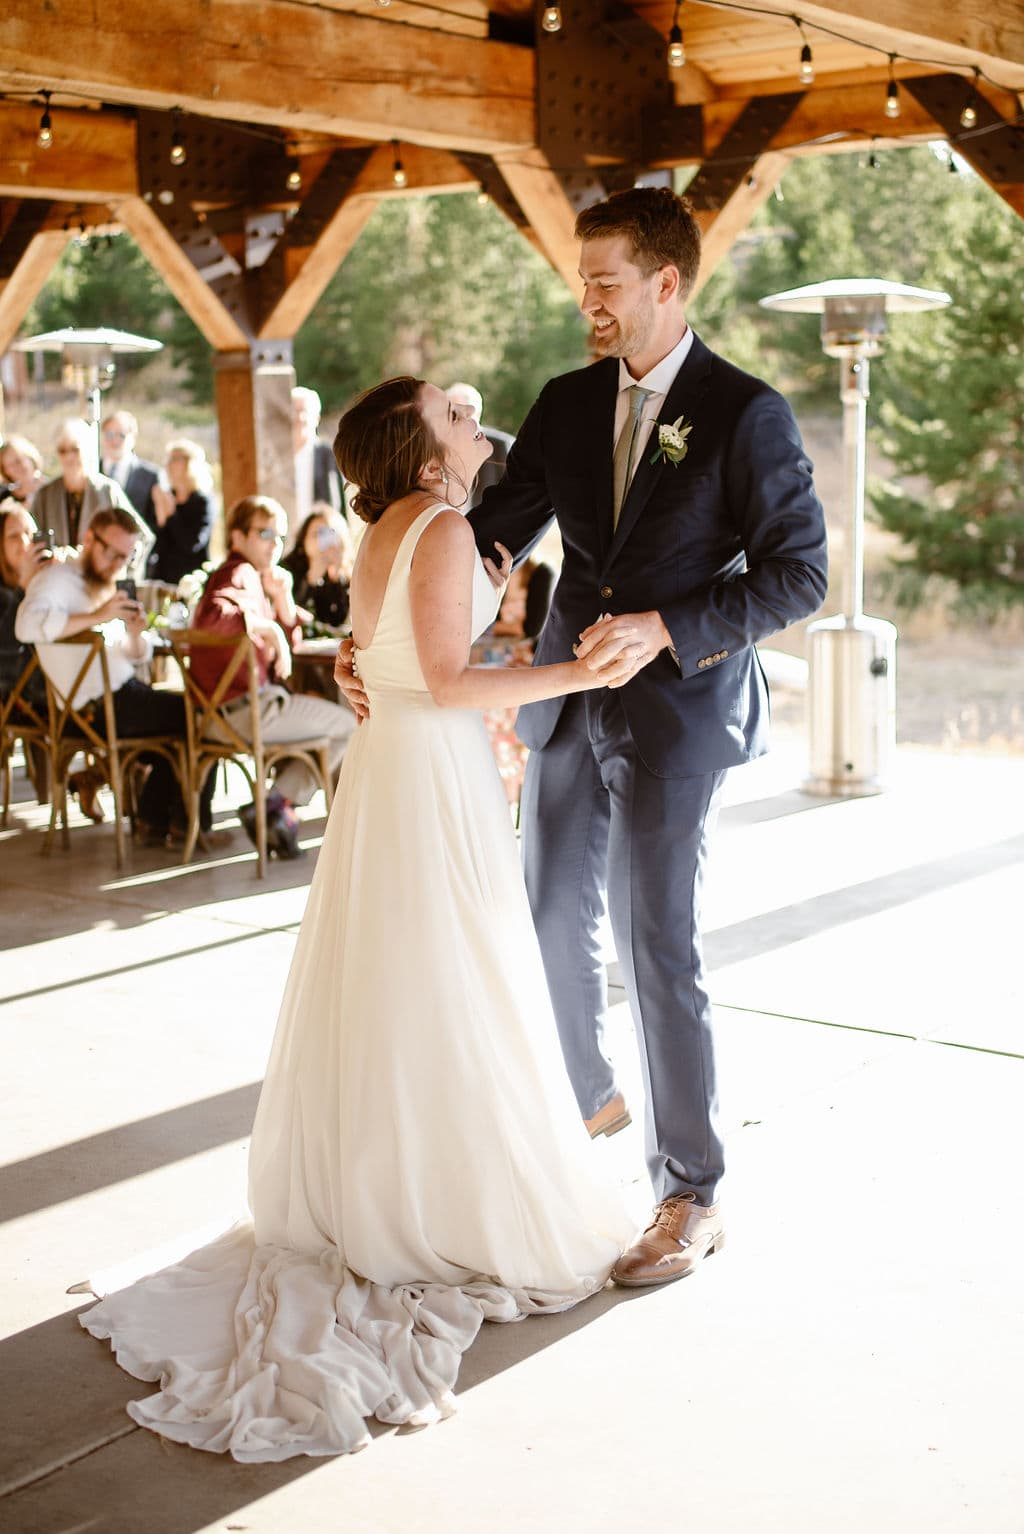 Bride and Groom First Dance at Windy Point Campground